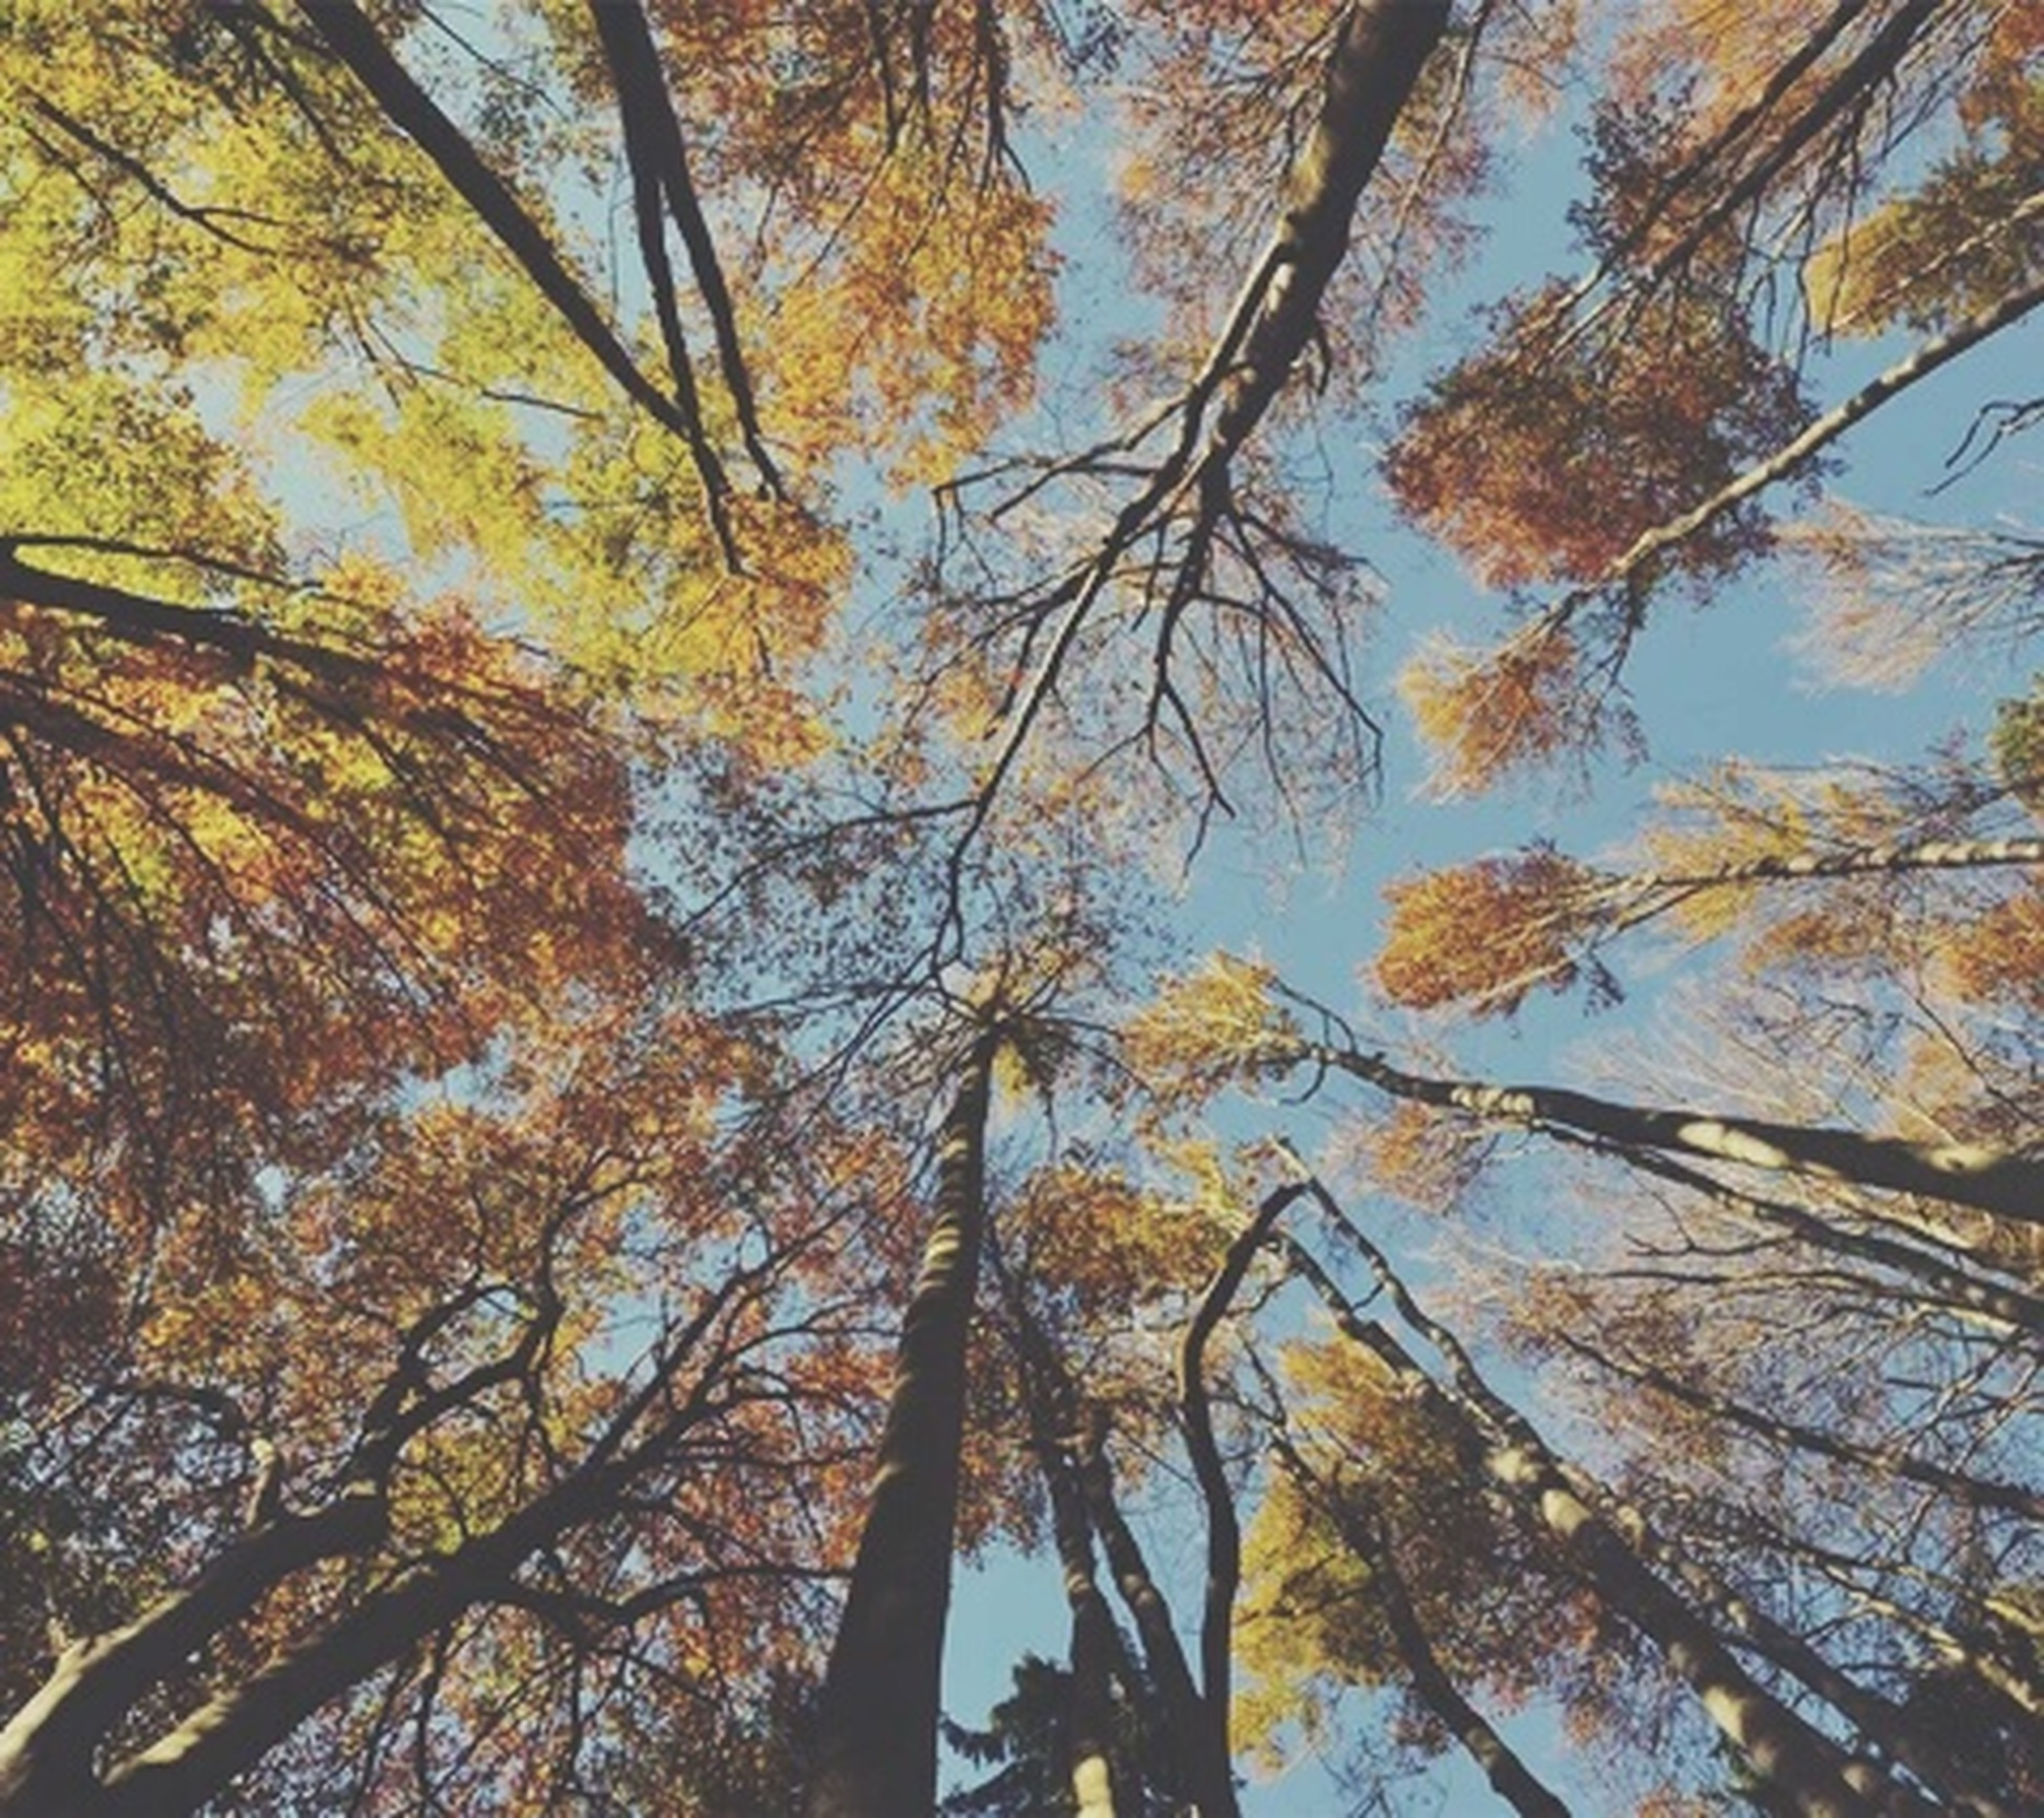 tree, branch, low angle view, autumn, tranquility, growth, nature, beauty in nature, change, tree trunk, scenics, tranquil scene, sky, season, leaf, day, outdoors, no people, forest, clear sky